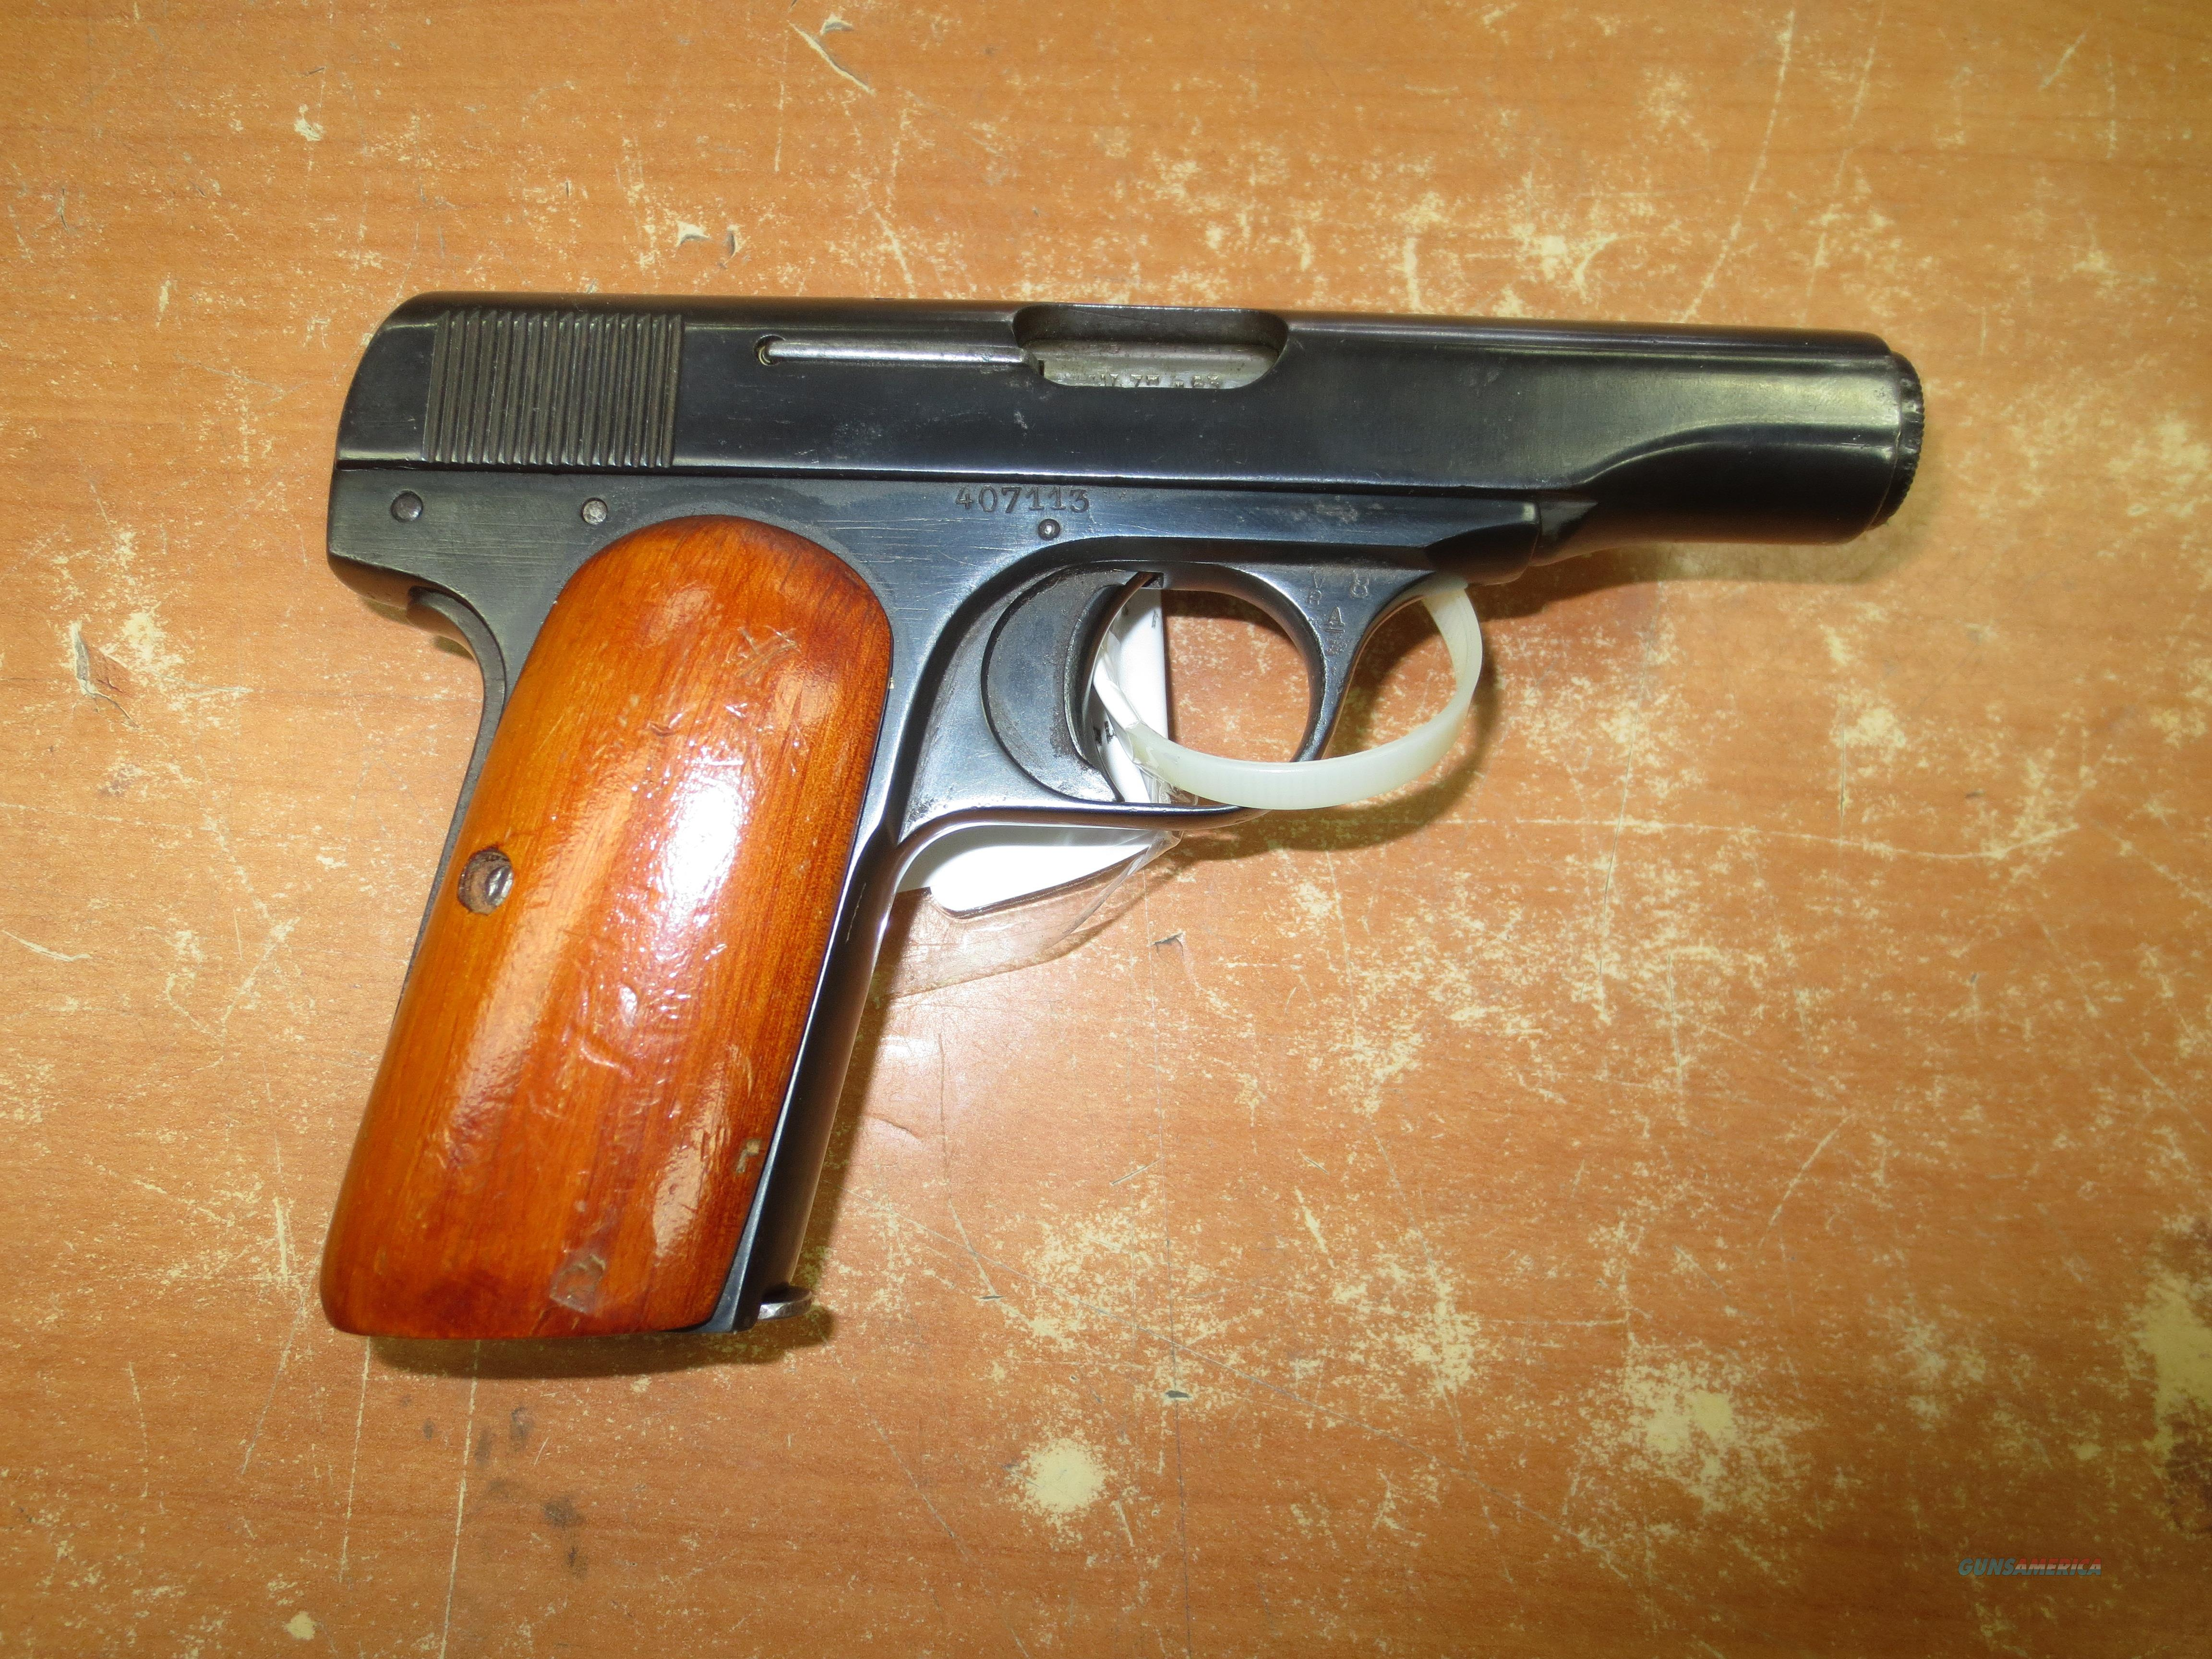 Browning FN 1910 pistol 7.65mm Custom grips  Guns > Pistols > Browning Pistols > Other Autos